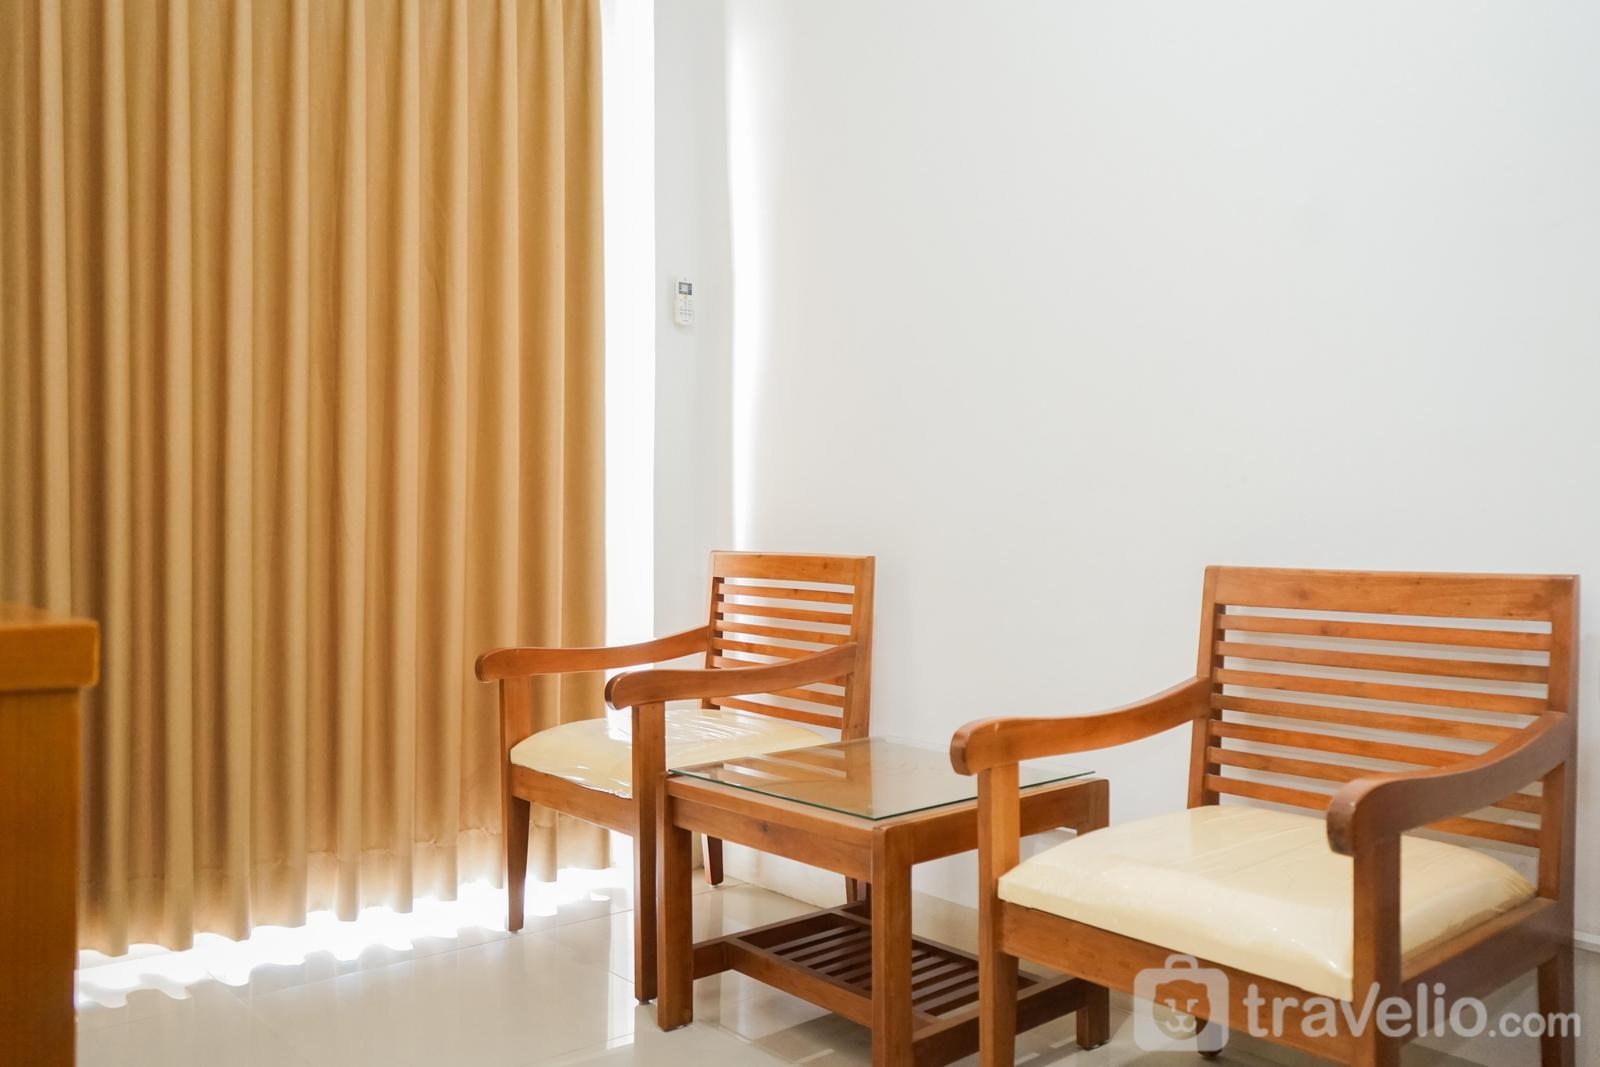 Signature Park Grande M.T Haryono - Homey 1BR at Signature Park Grande Apartment By Travelio